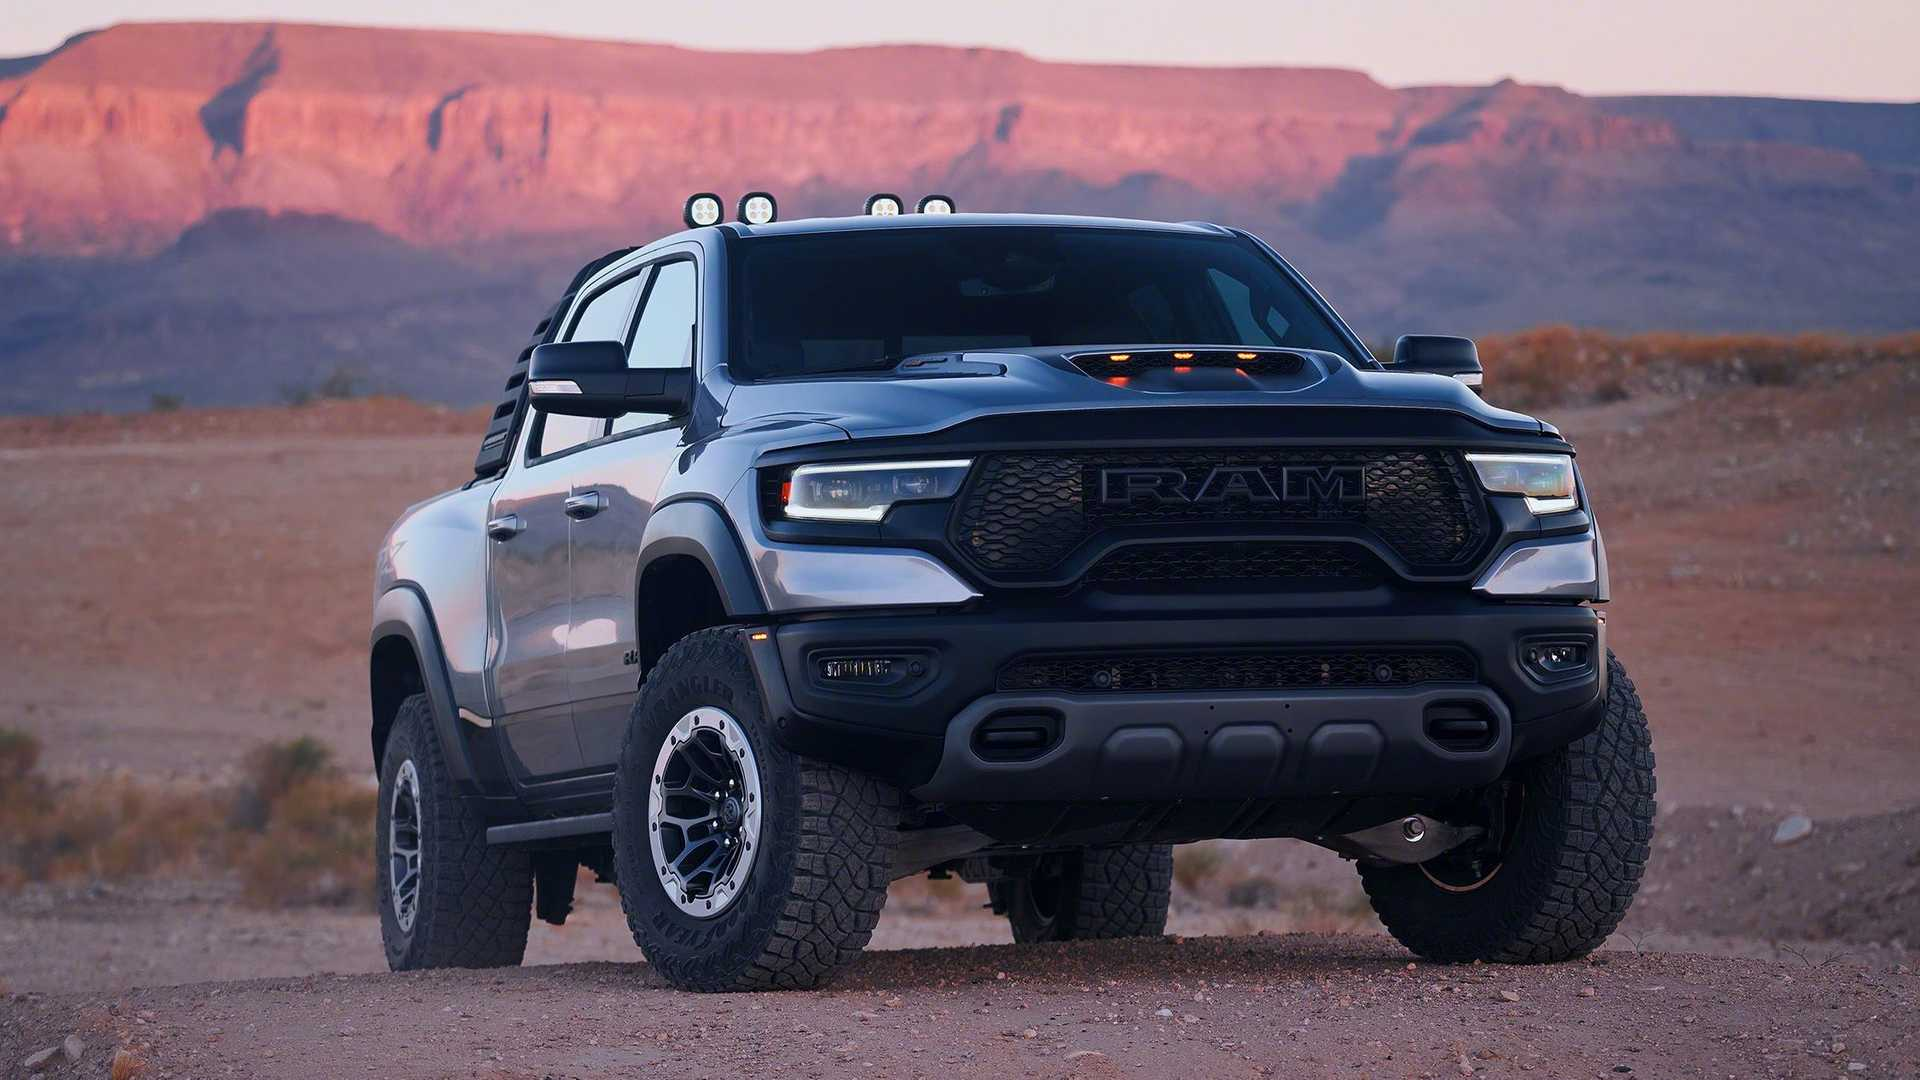 2021 Ram Trx Officially Coming To Europe